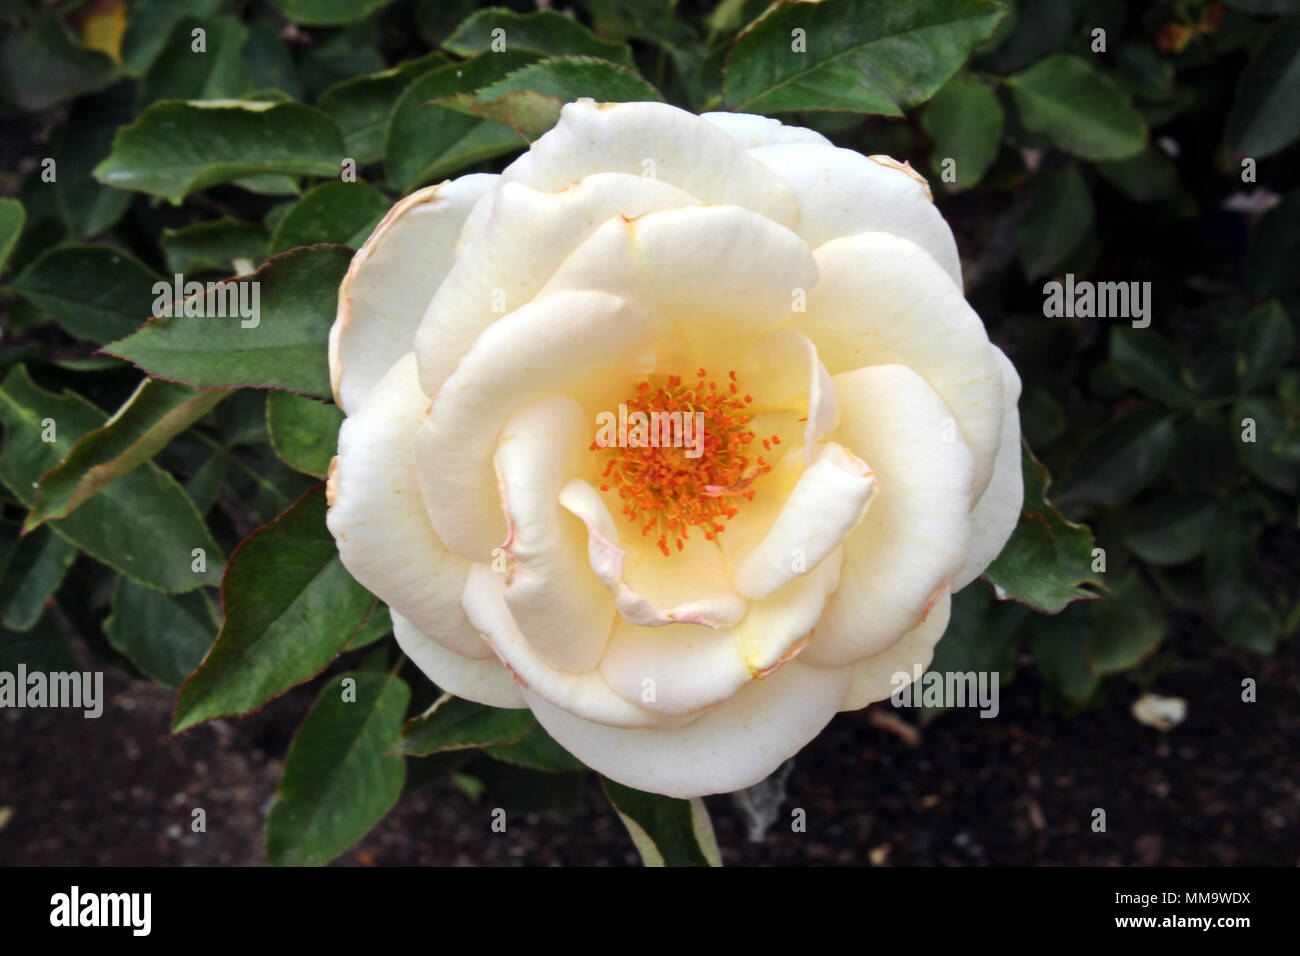 Close Up Of A White Jacqueline Du Pre Rose In Full Bloom At The Inez